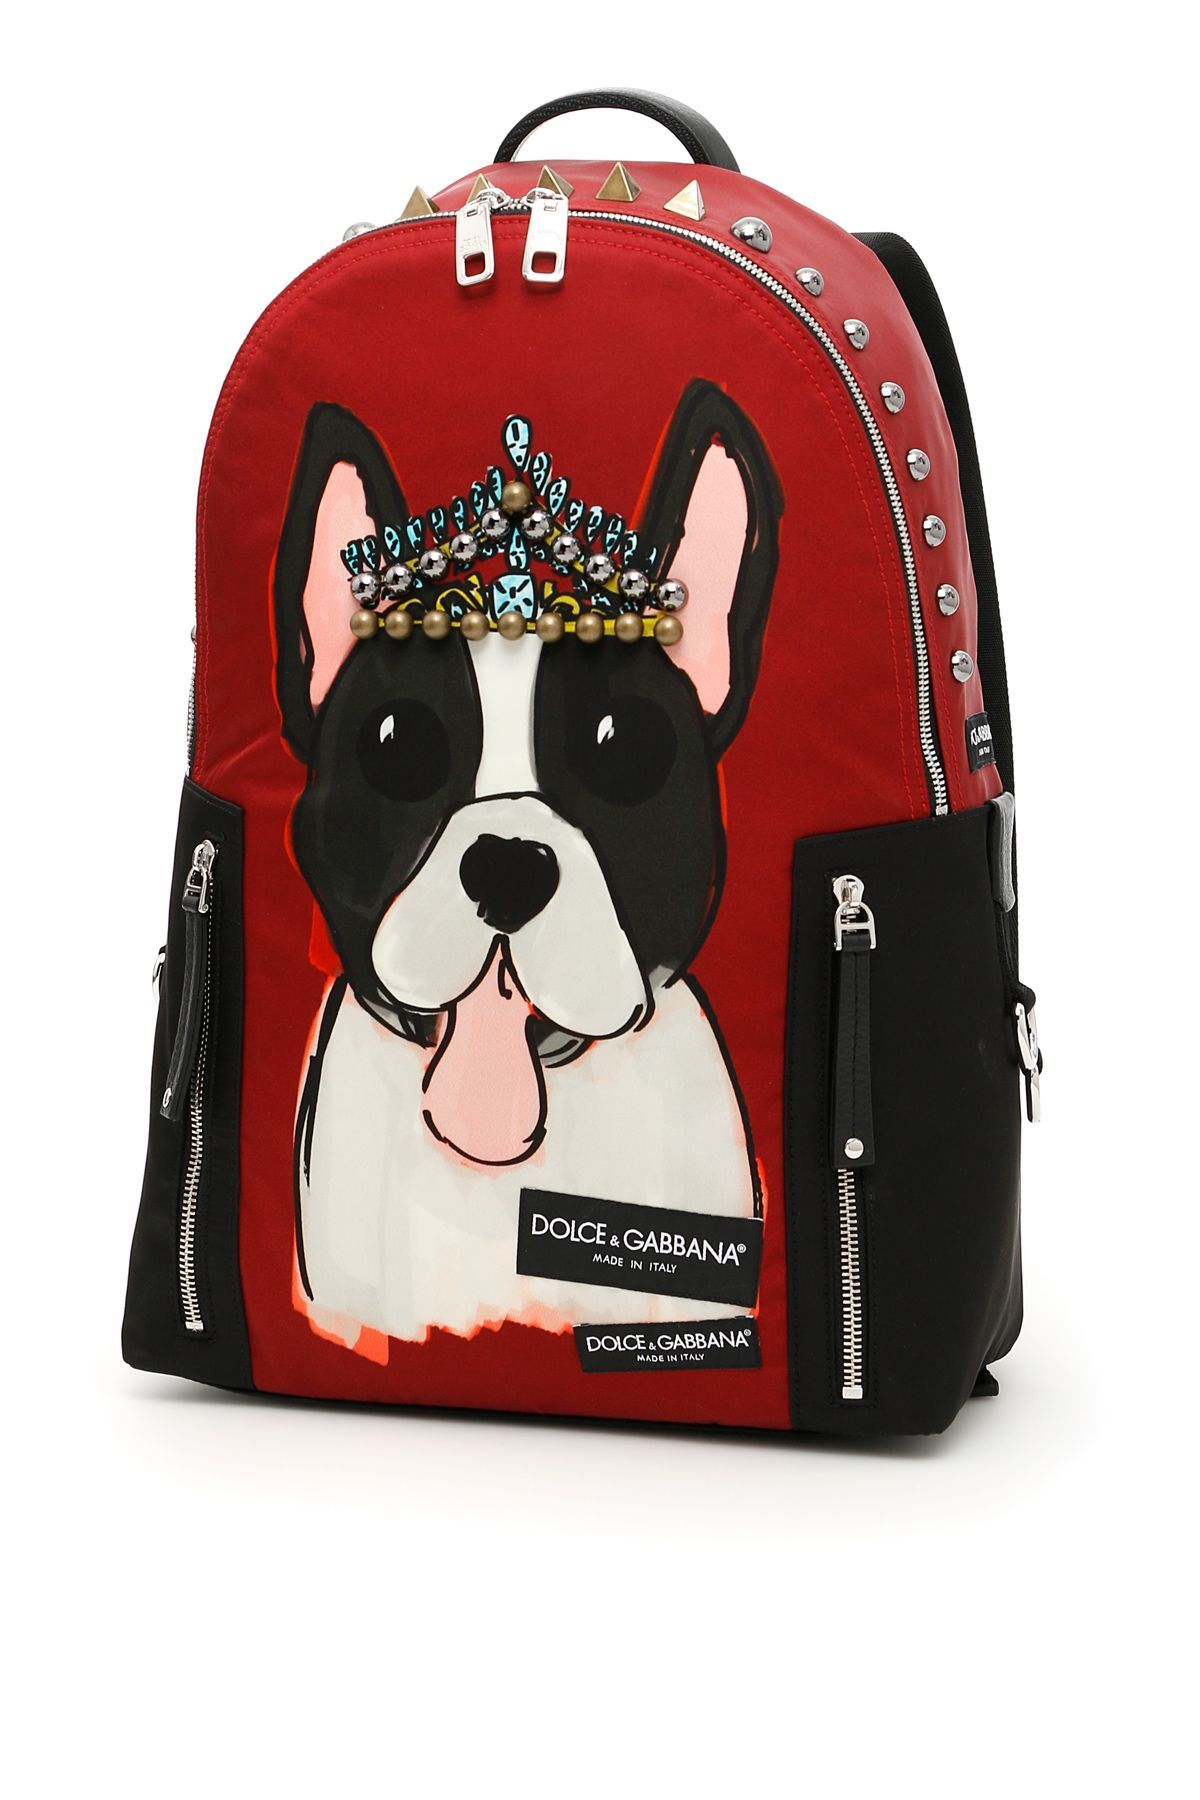 f13916e818bc DOLCE   GABBANA NYLON BACKPACK WITH DOG PRINT.  dolcegabbana  bags  leather   lining  nylon  backpacks  metallic